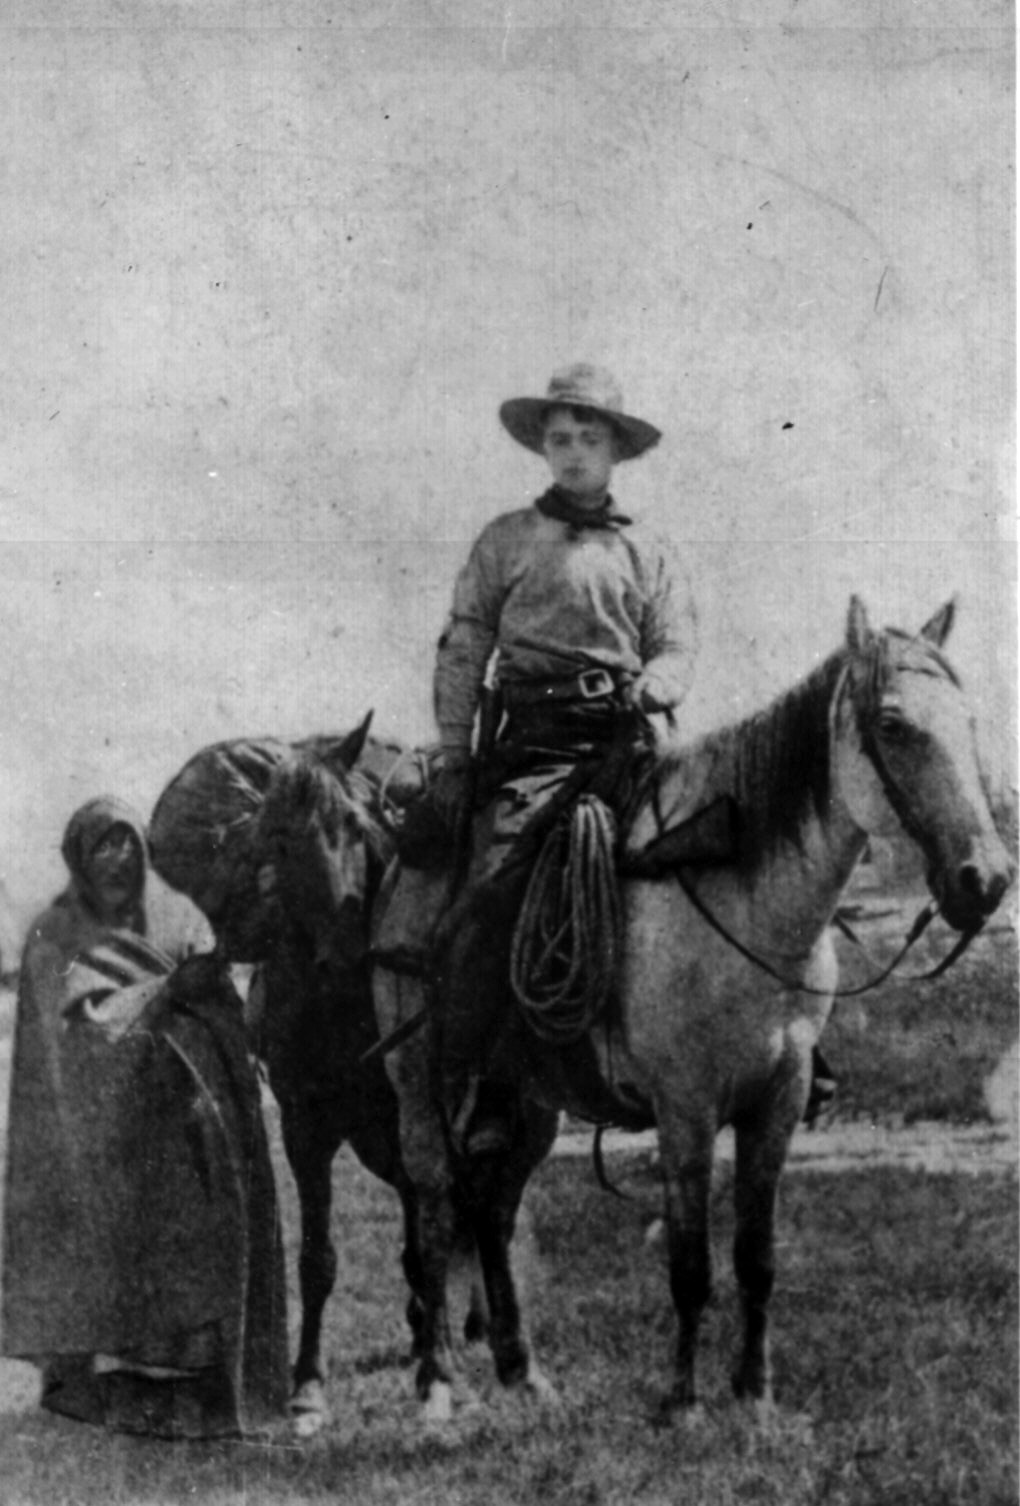 Pony Express rider Frank E. Webner, circa 1861. Photo from U.S. National Archives & Records Administration